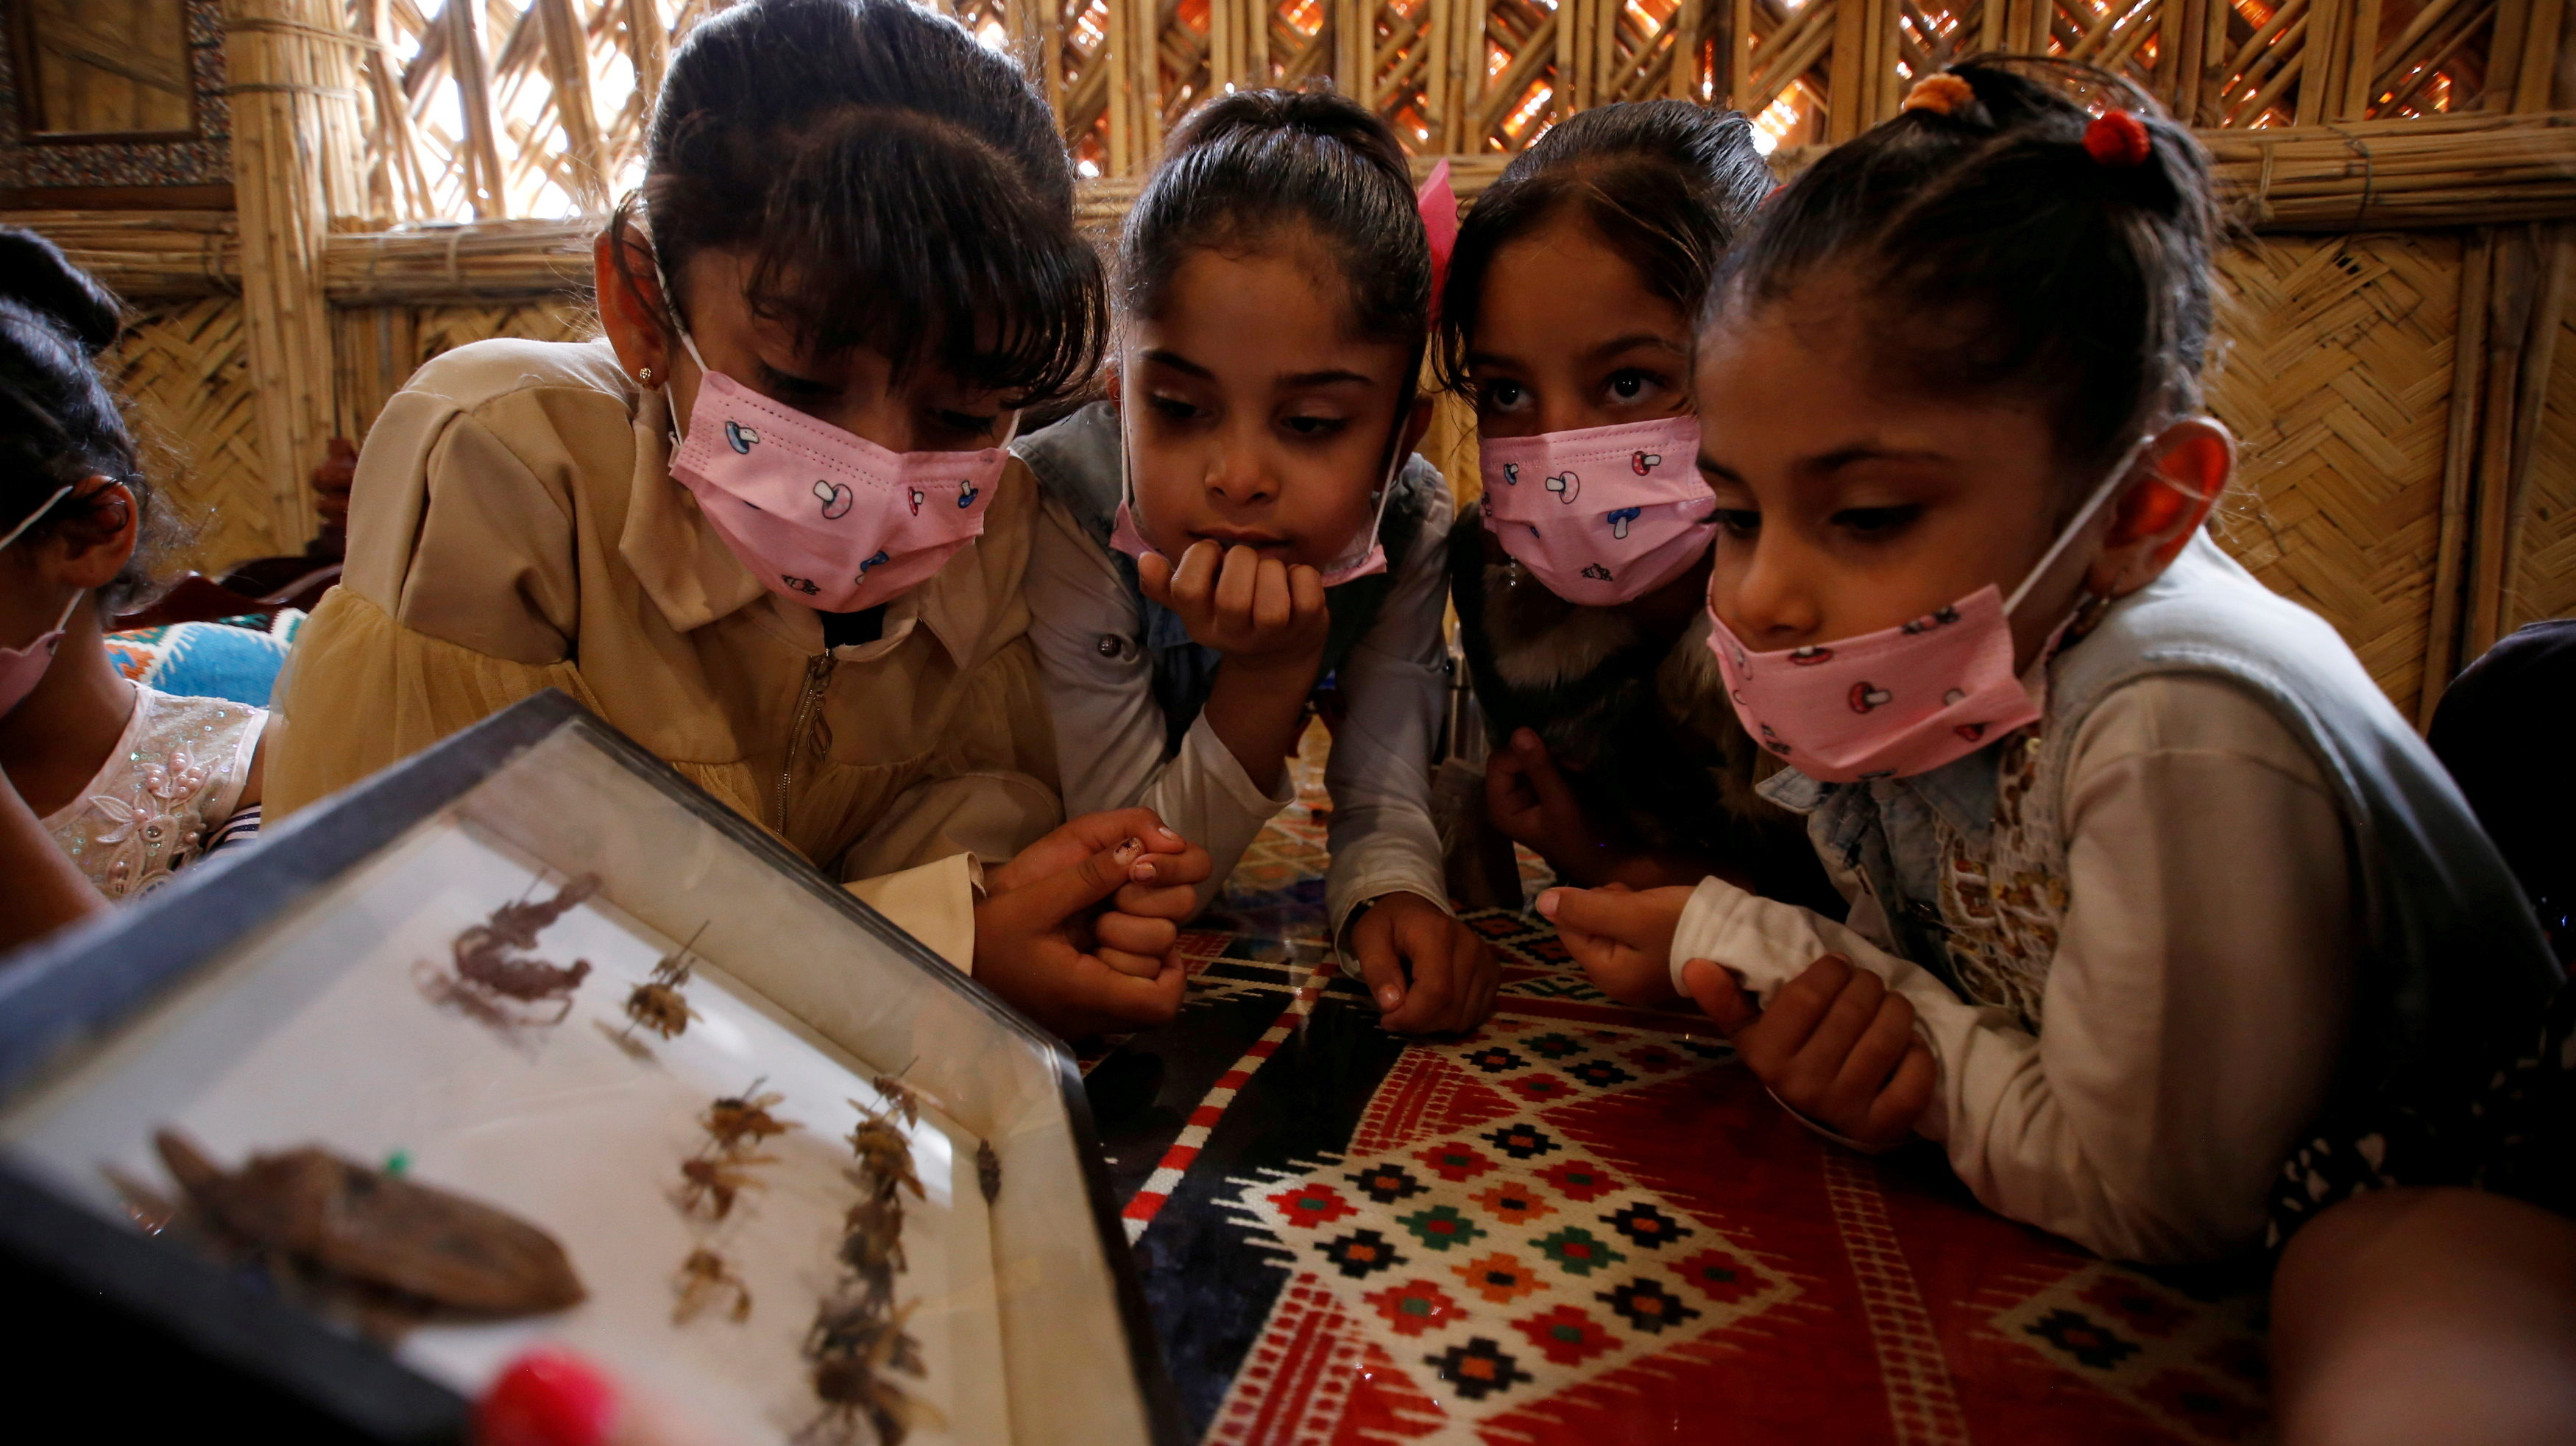 a group of children look at a display box filled with insects